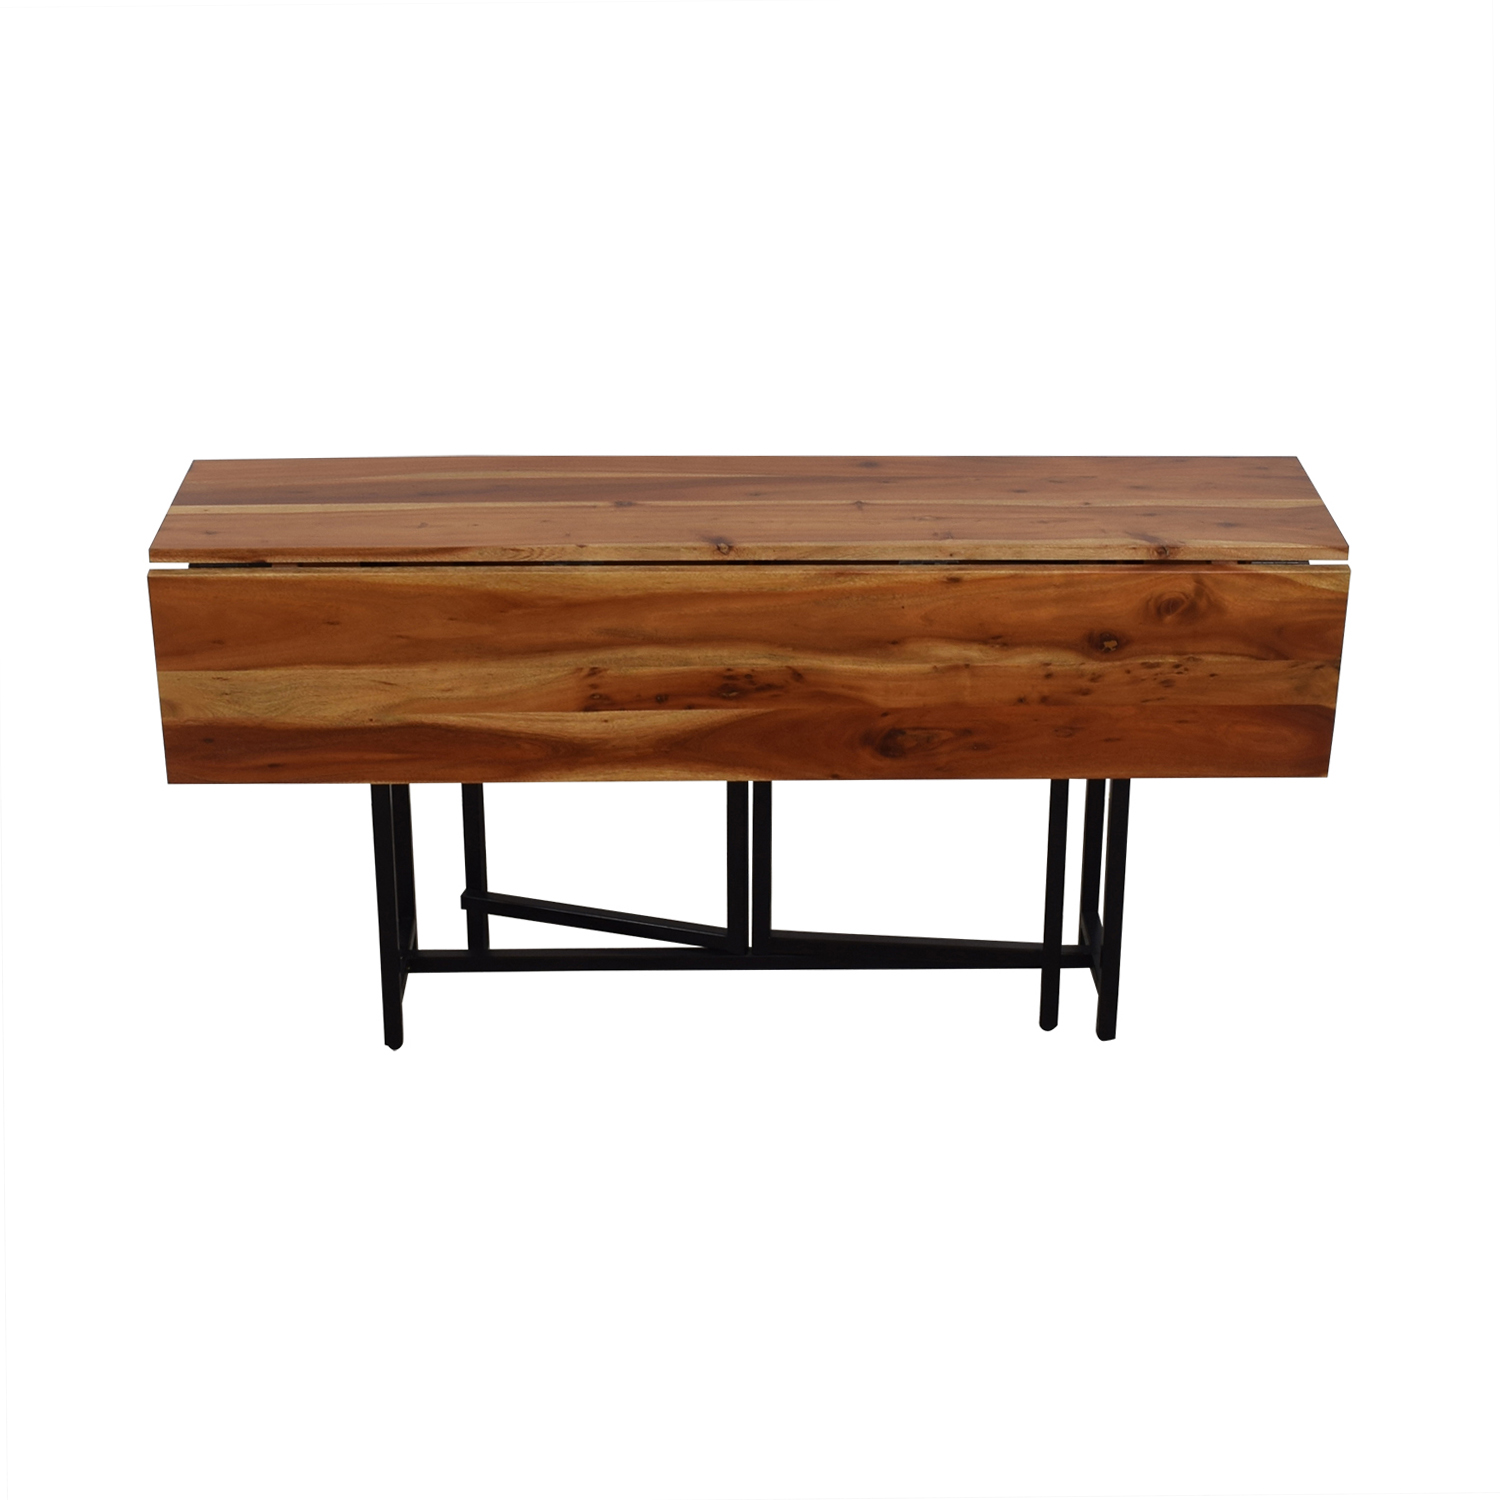 shop Crate & Barrel Crate & Barrel Origami Drop Leaf Rectangular Dining Table online